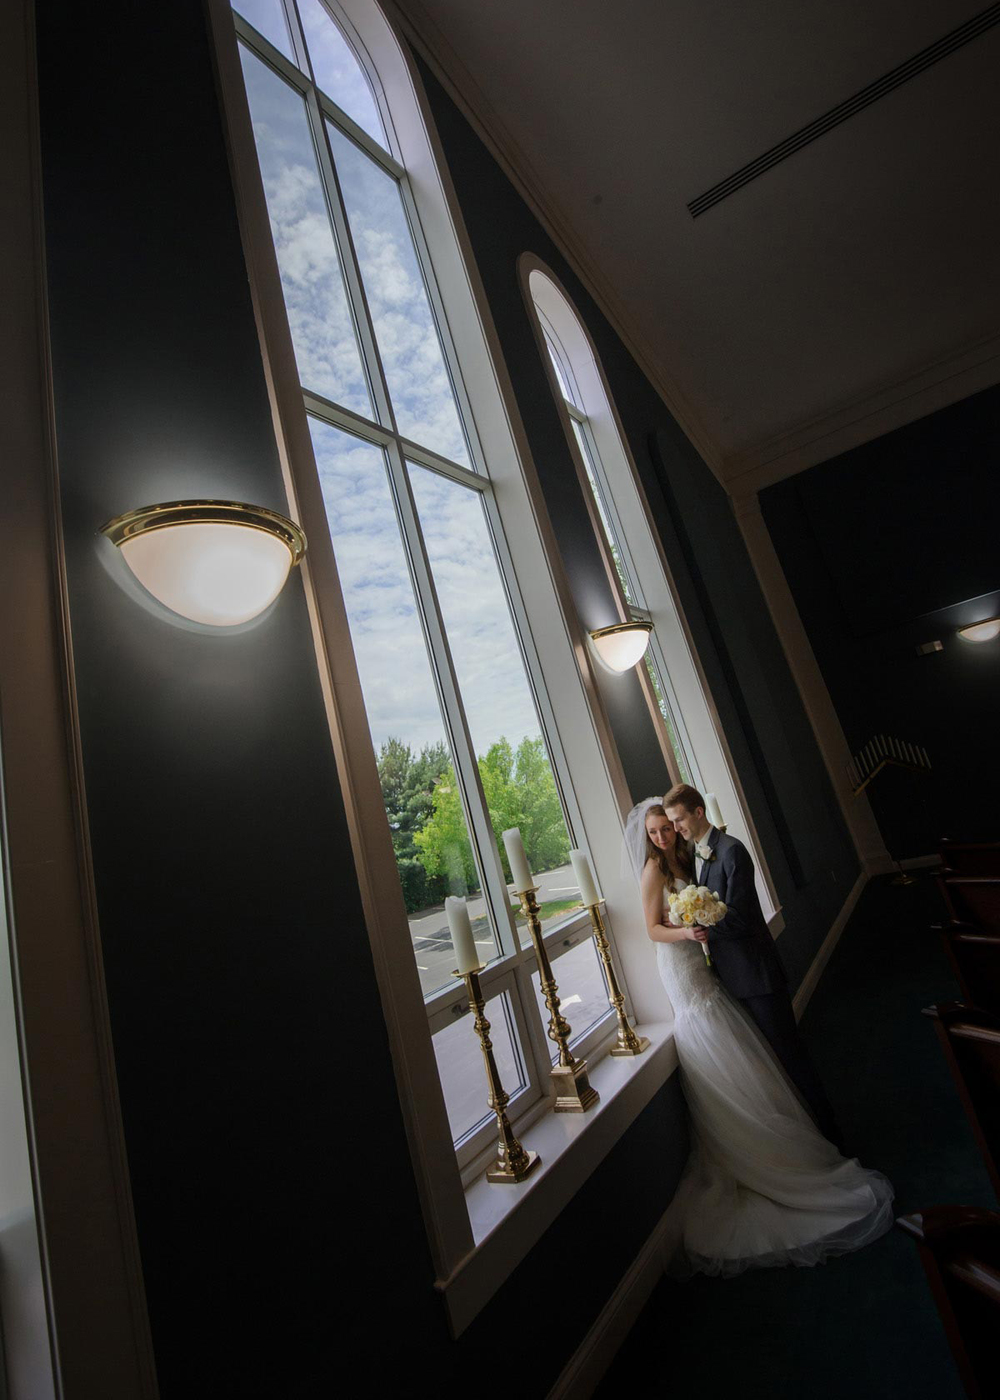 wedding_photographer_lexington_ky_studio_walz047.jpg